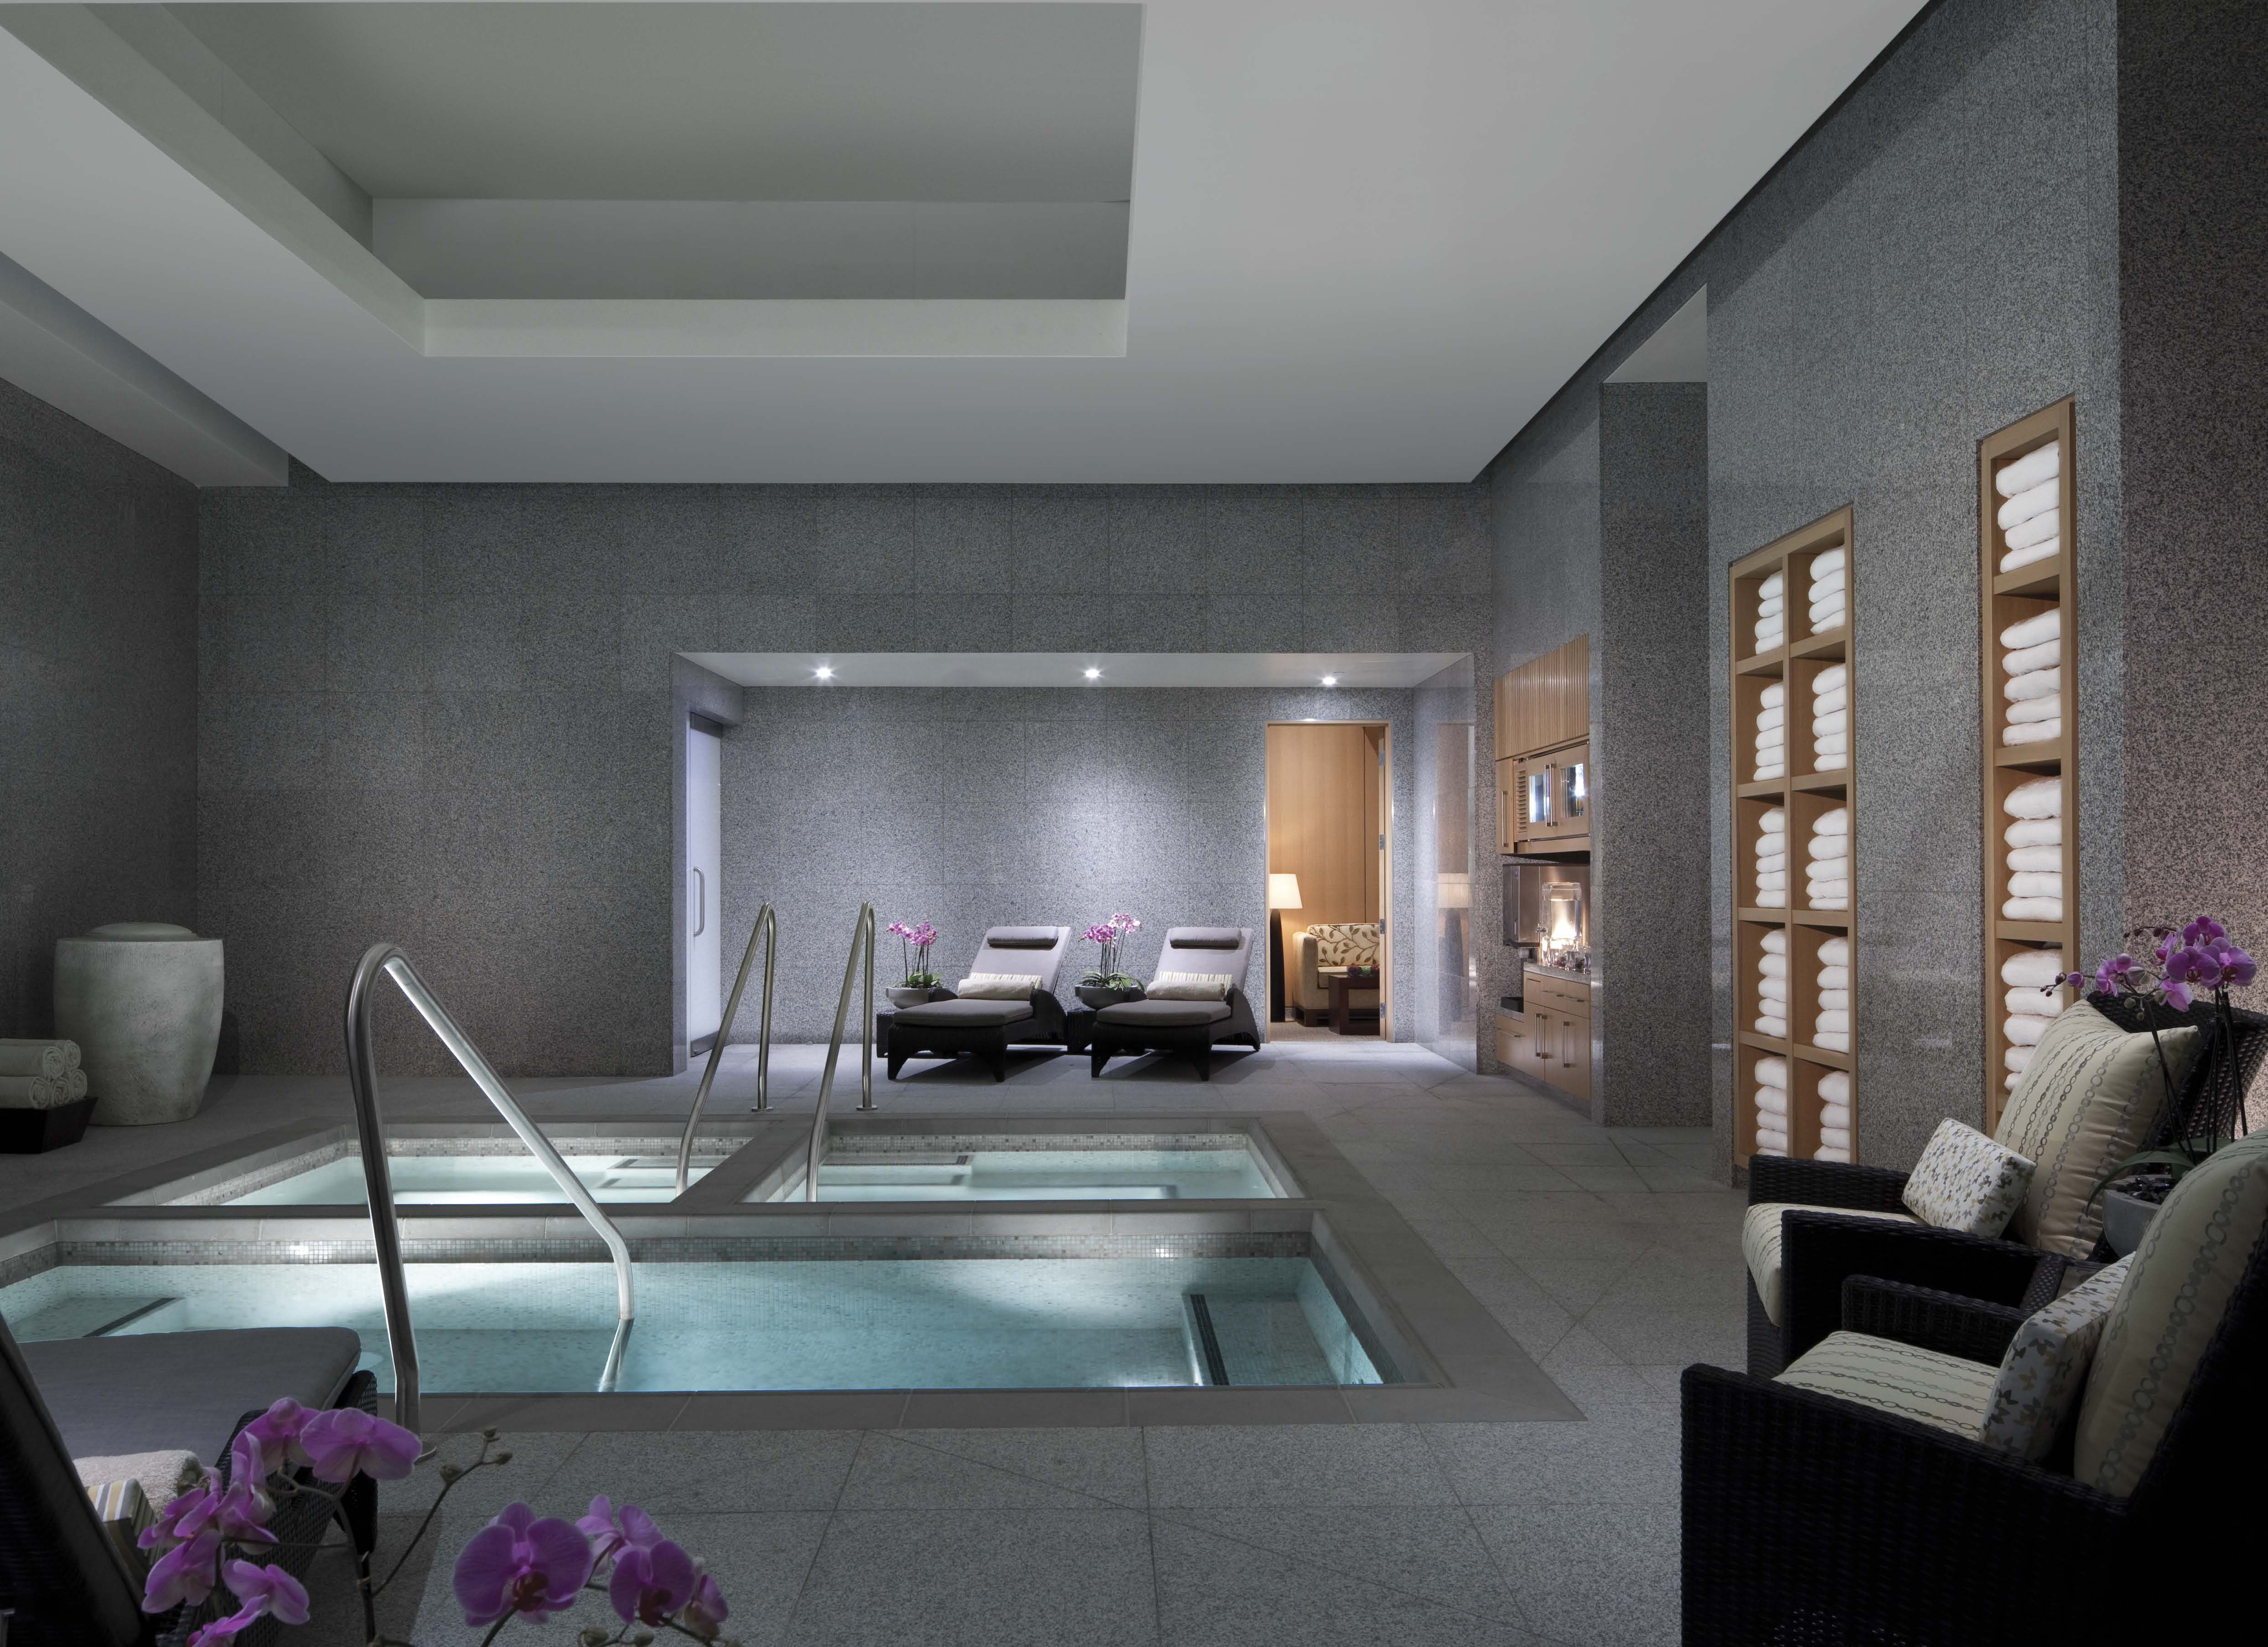 We Re So Ready For A Spa Day Just Looking At This Spa Inside